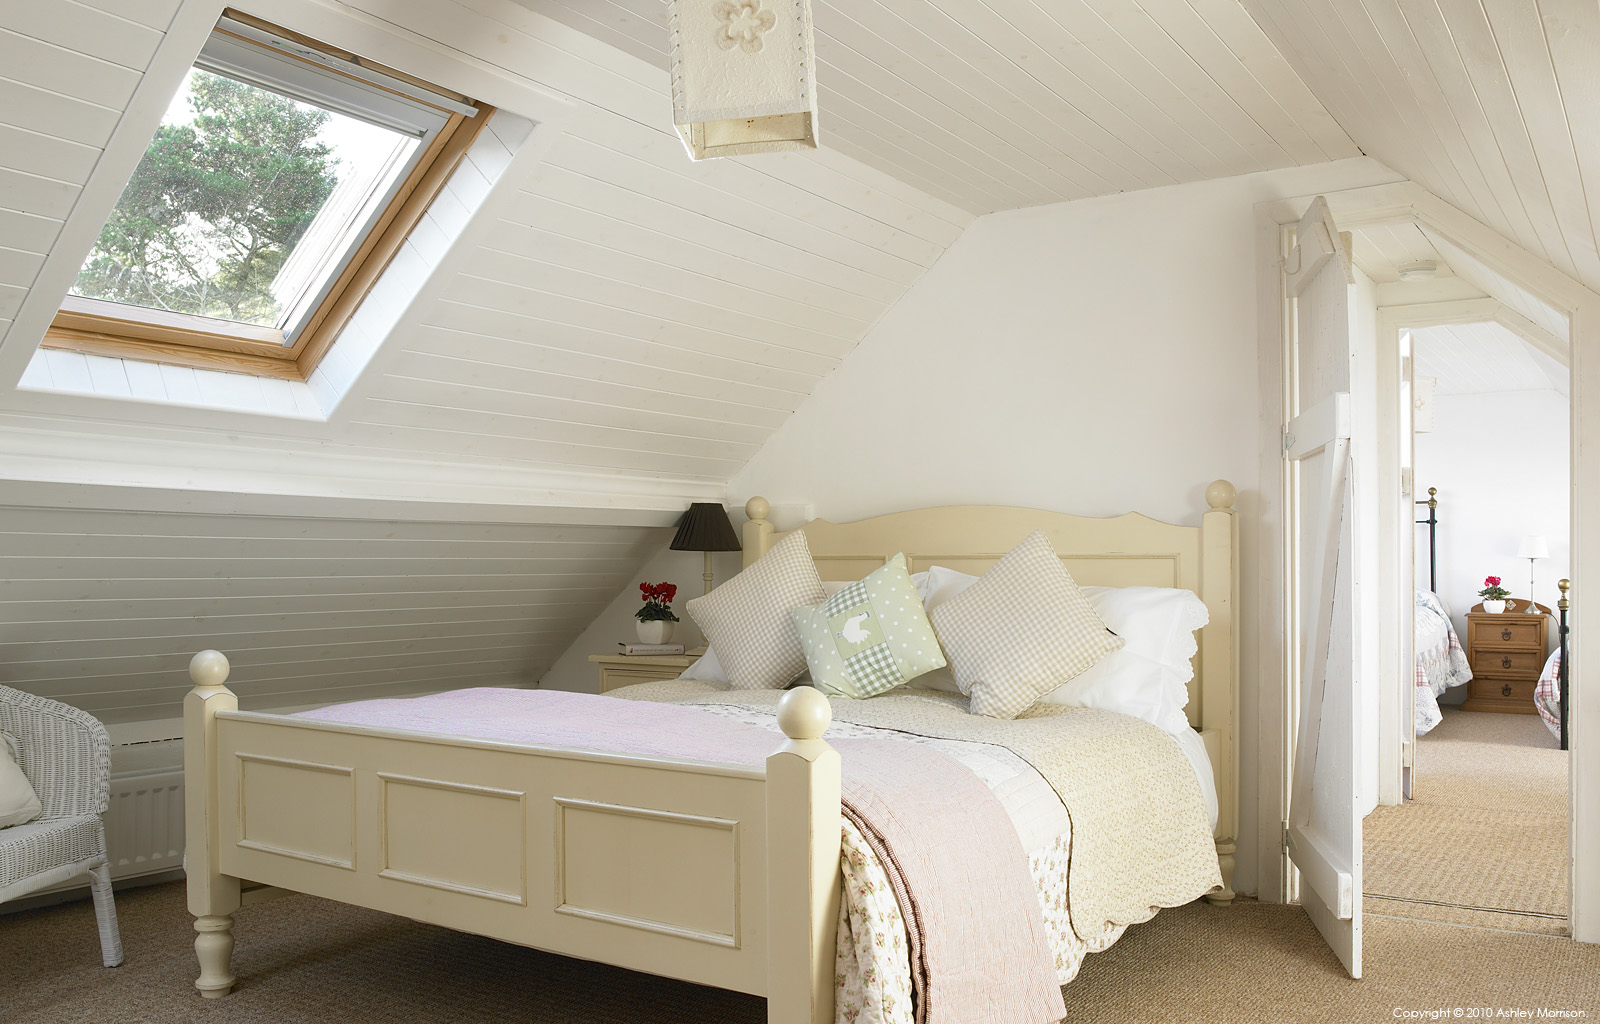 One of the attic bedrooms in Sarah and Geoff Mitchell's cottage called 'Paddy Mors' near Fanad Head in County Donegal.